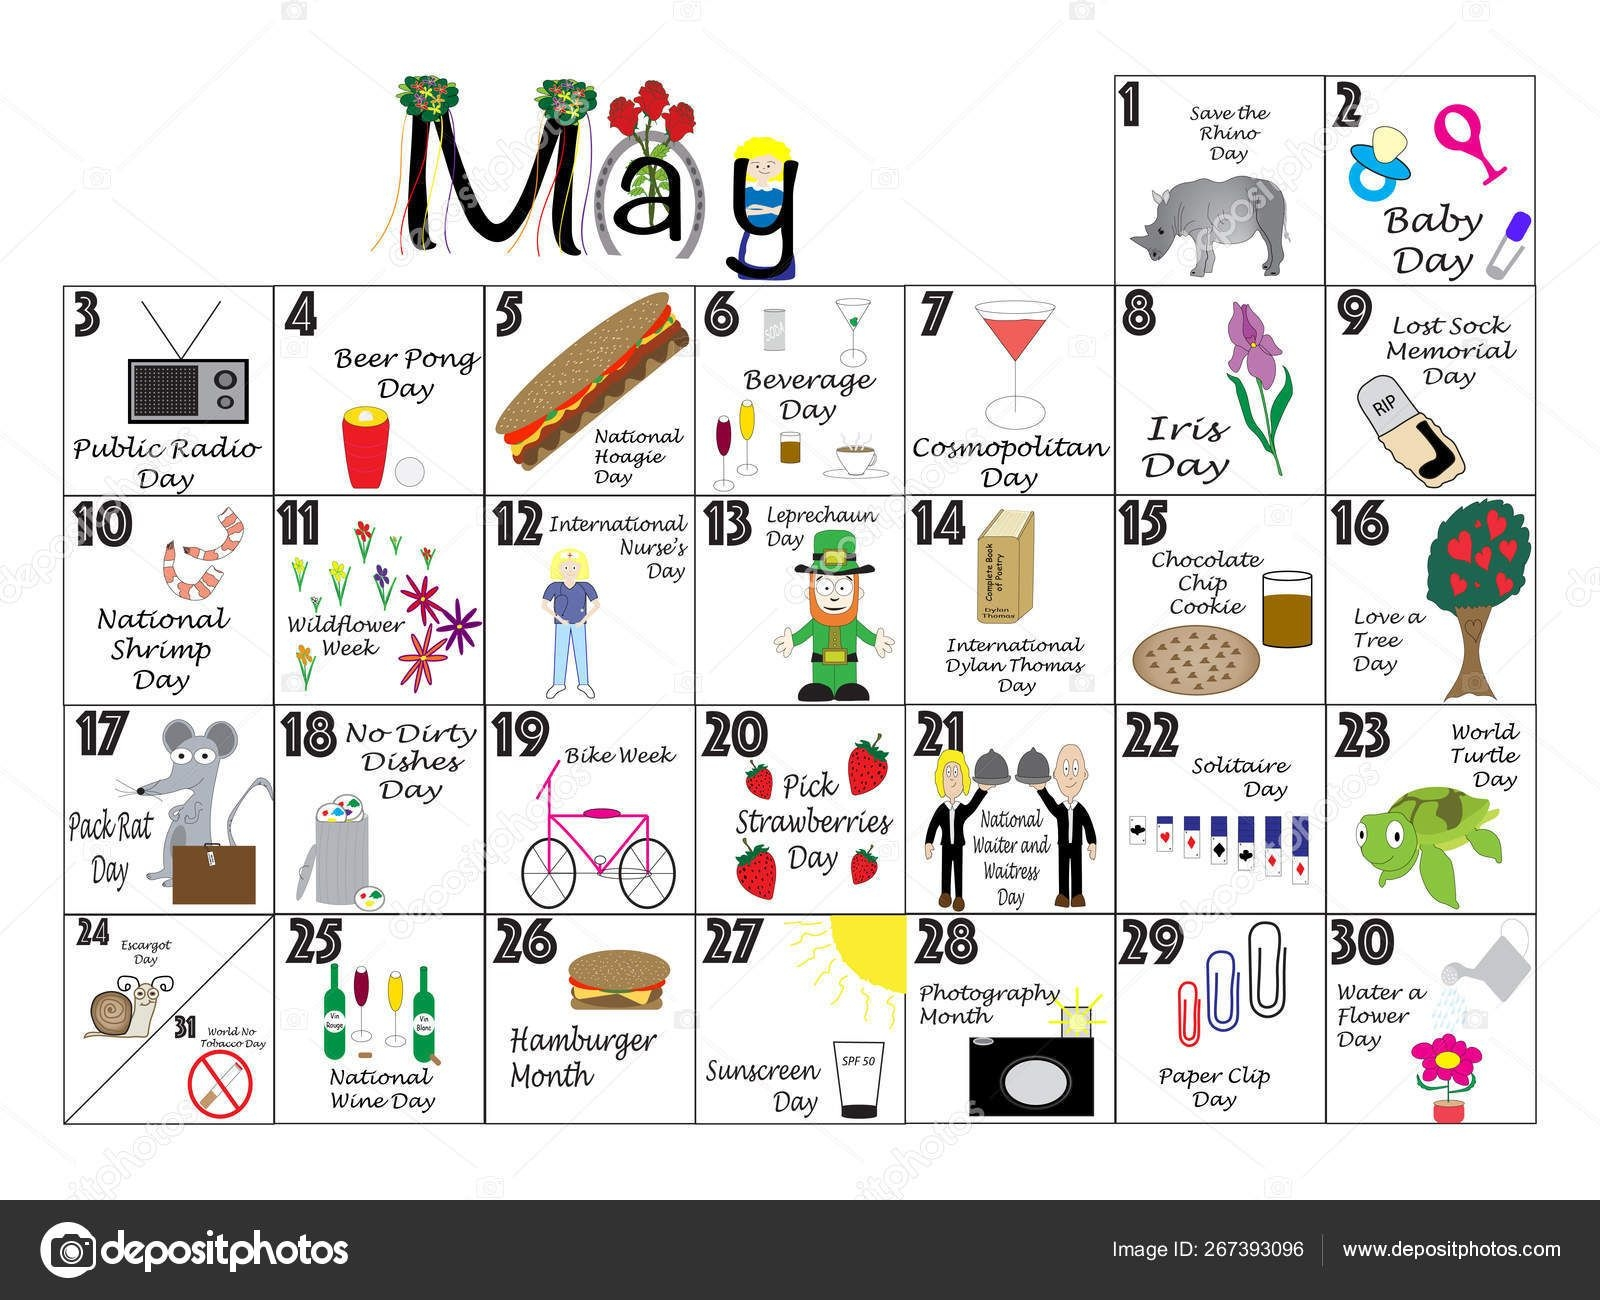 May 2020 Quirky Holidays And Unusual Celebrations Calendar 267393096